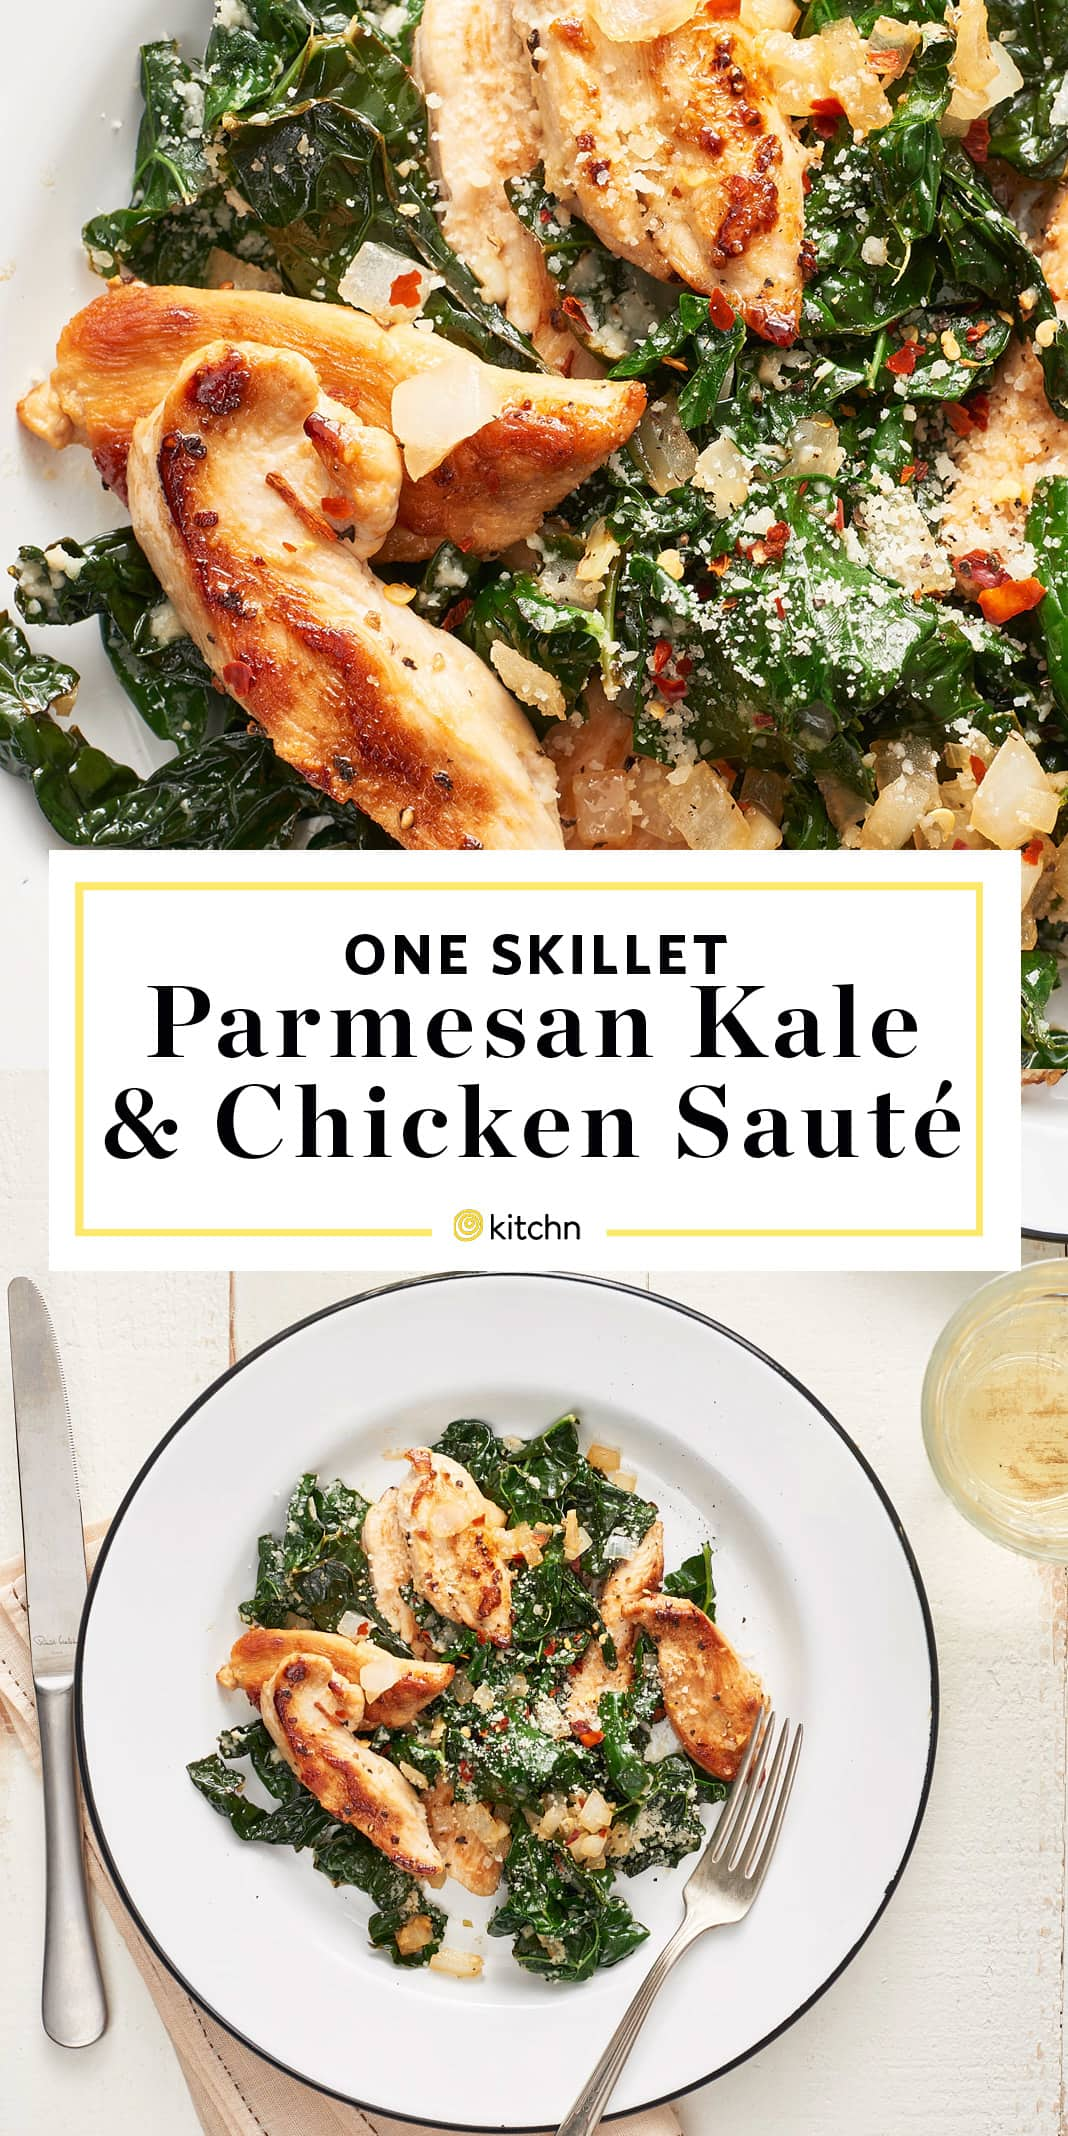 One Skillet Parmesan Kale and Chicken Saute